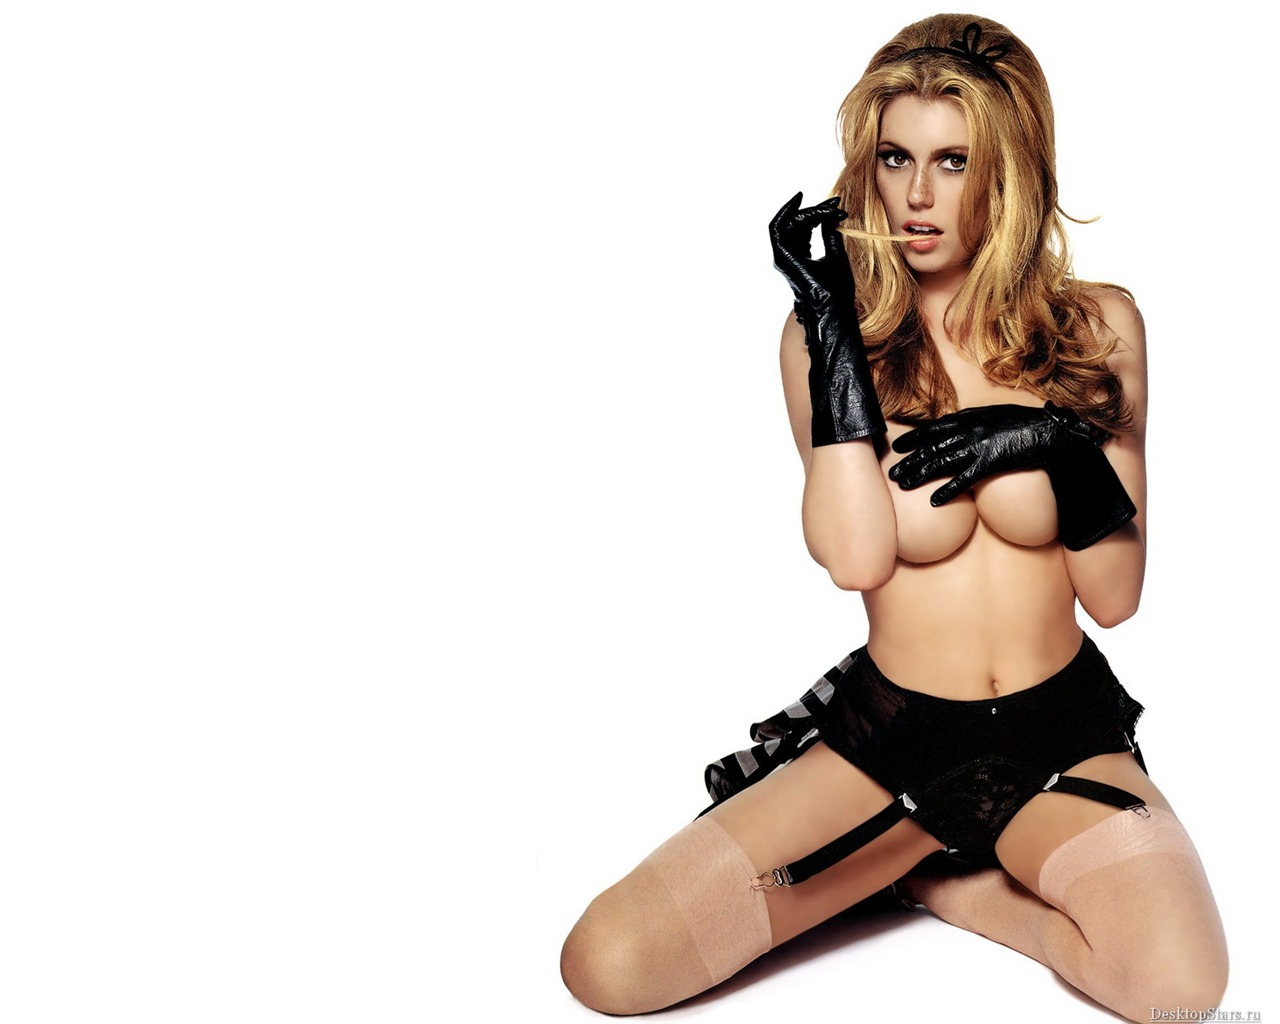 Diora Baird #008 - 1280x1024 Wallpapers Pictures Photos Images